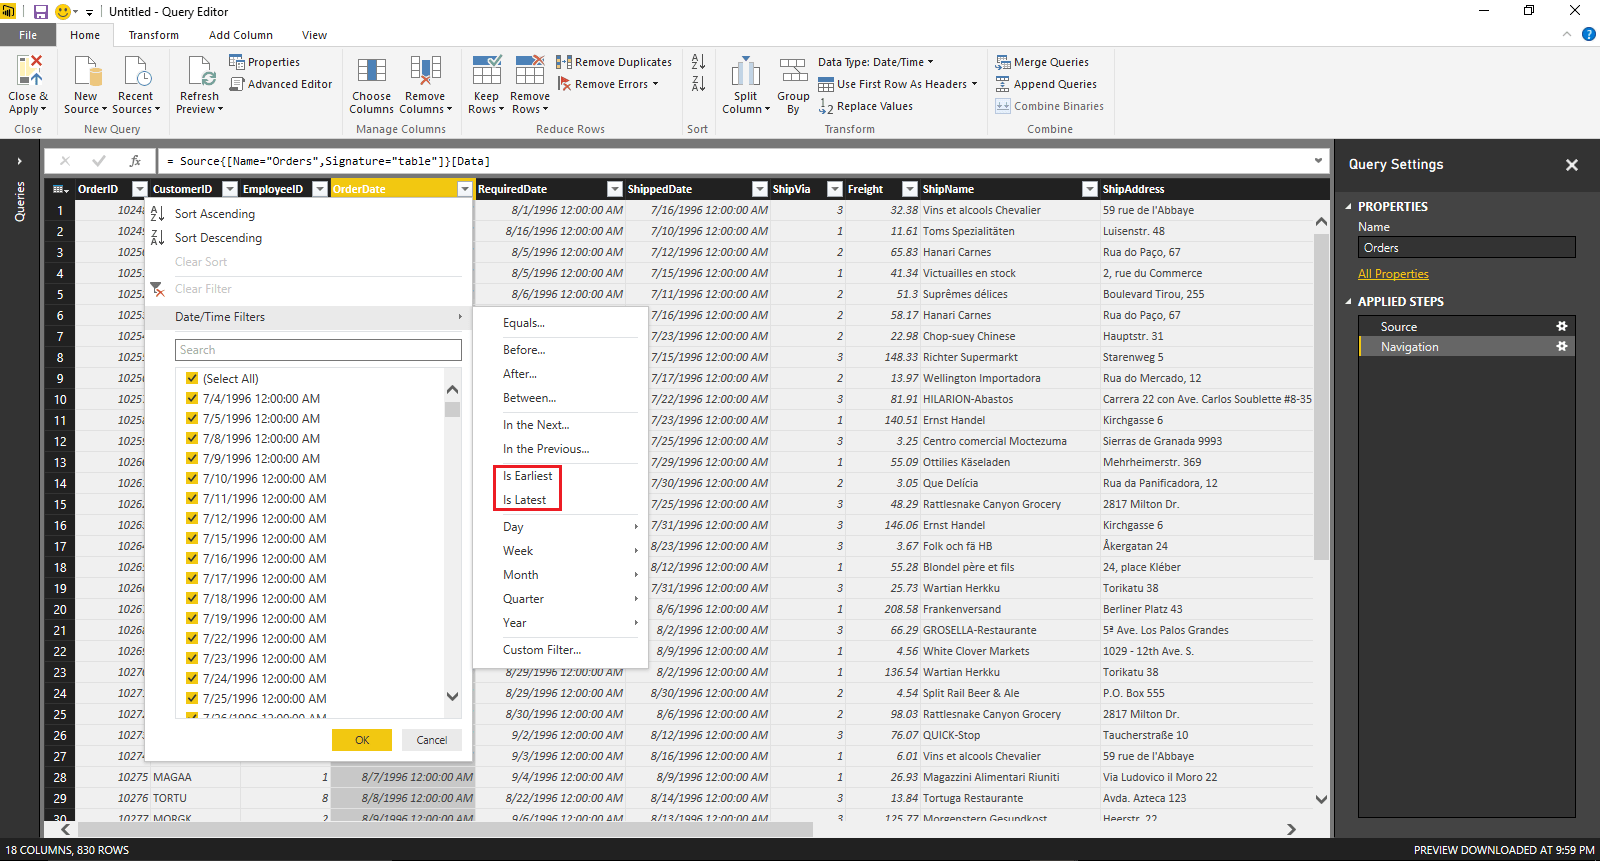 Excel Vba Set Cell Value Todayu S Date